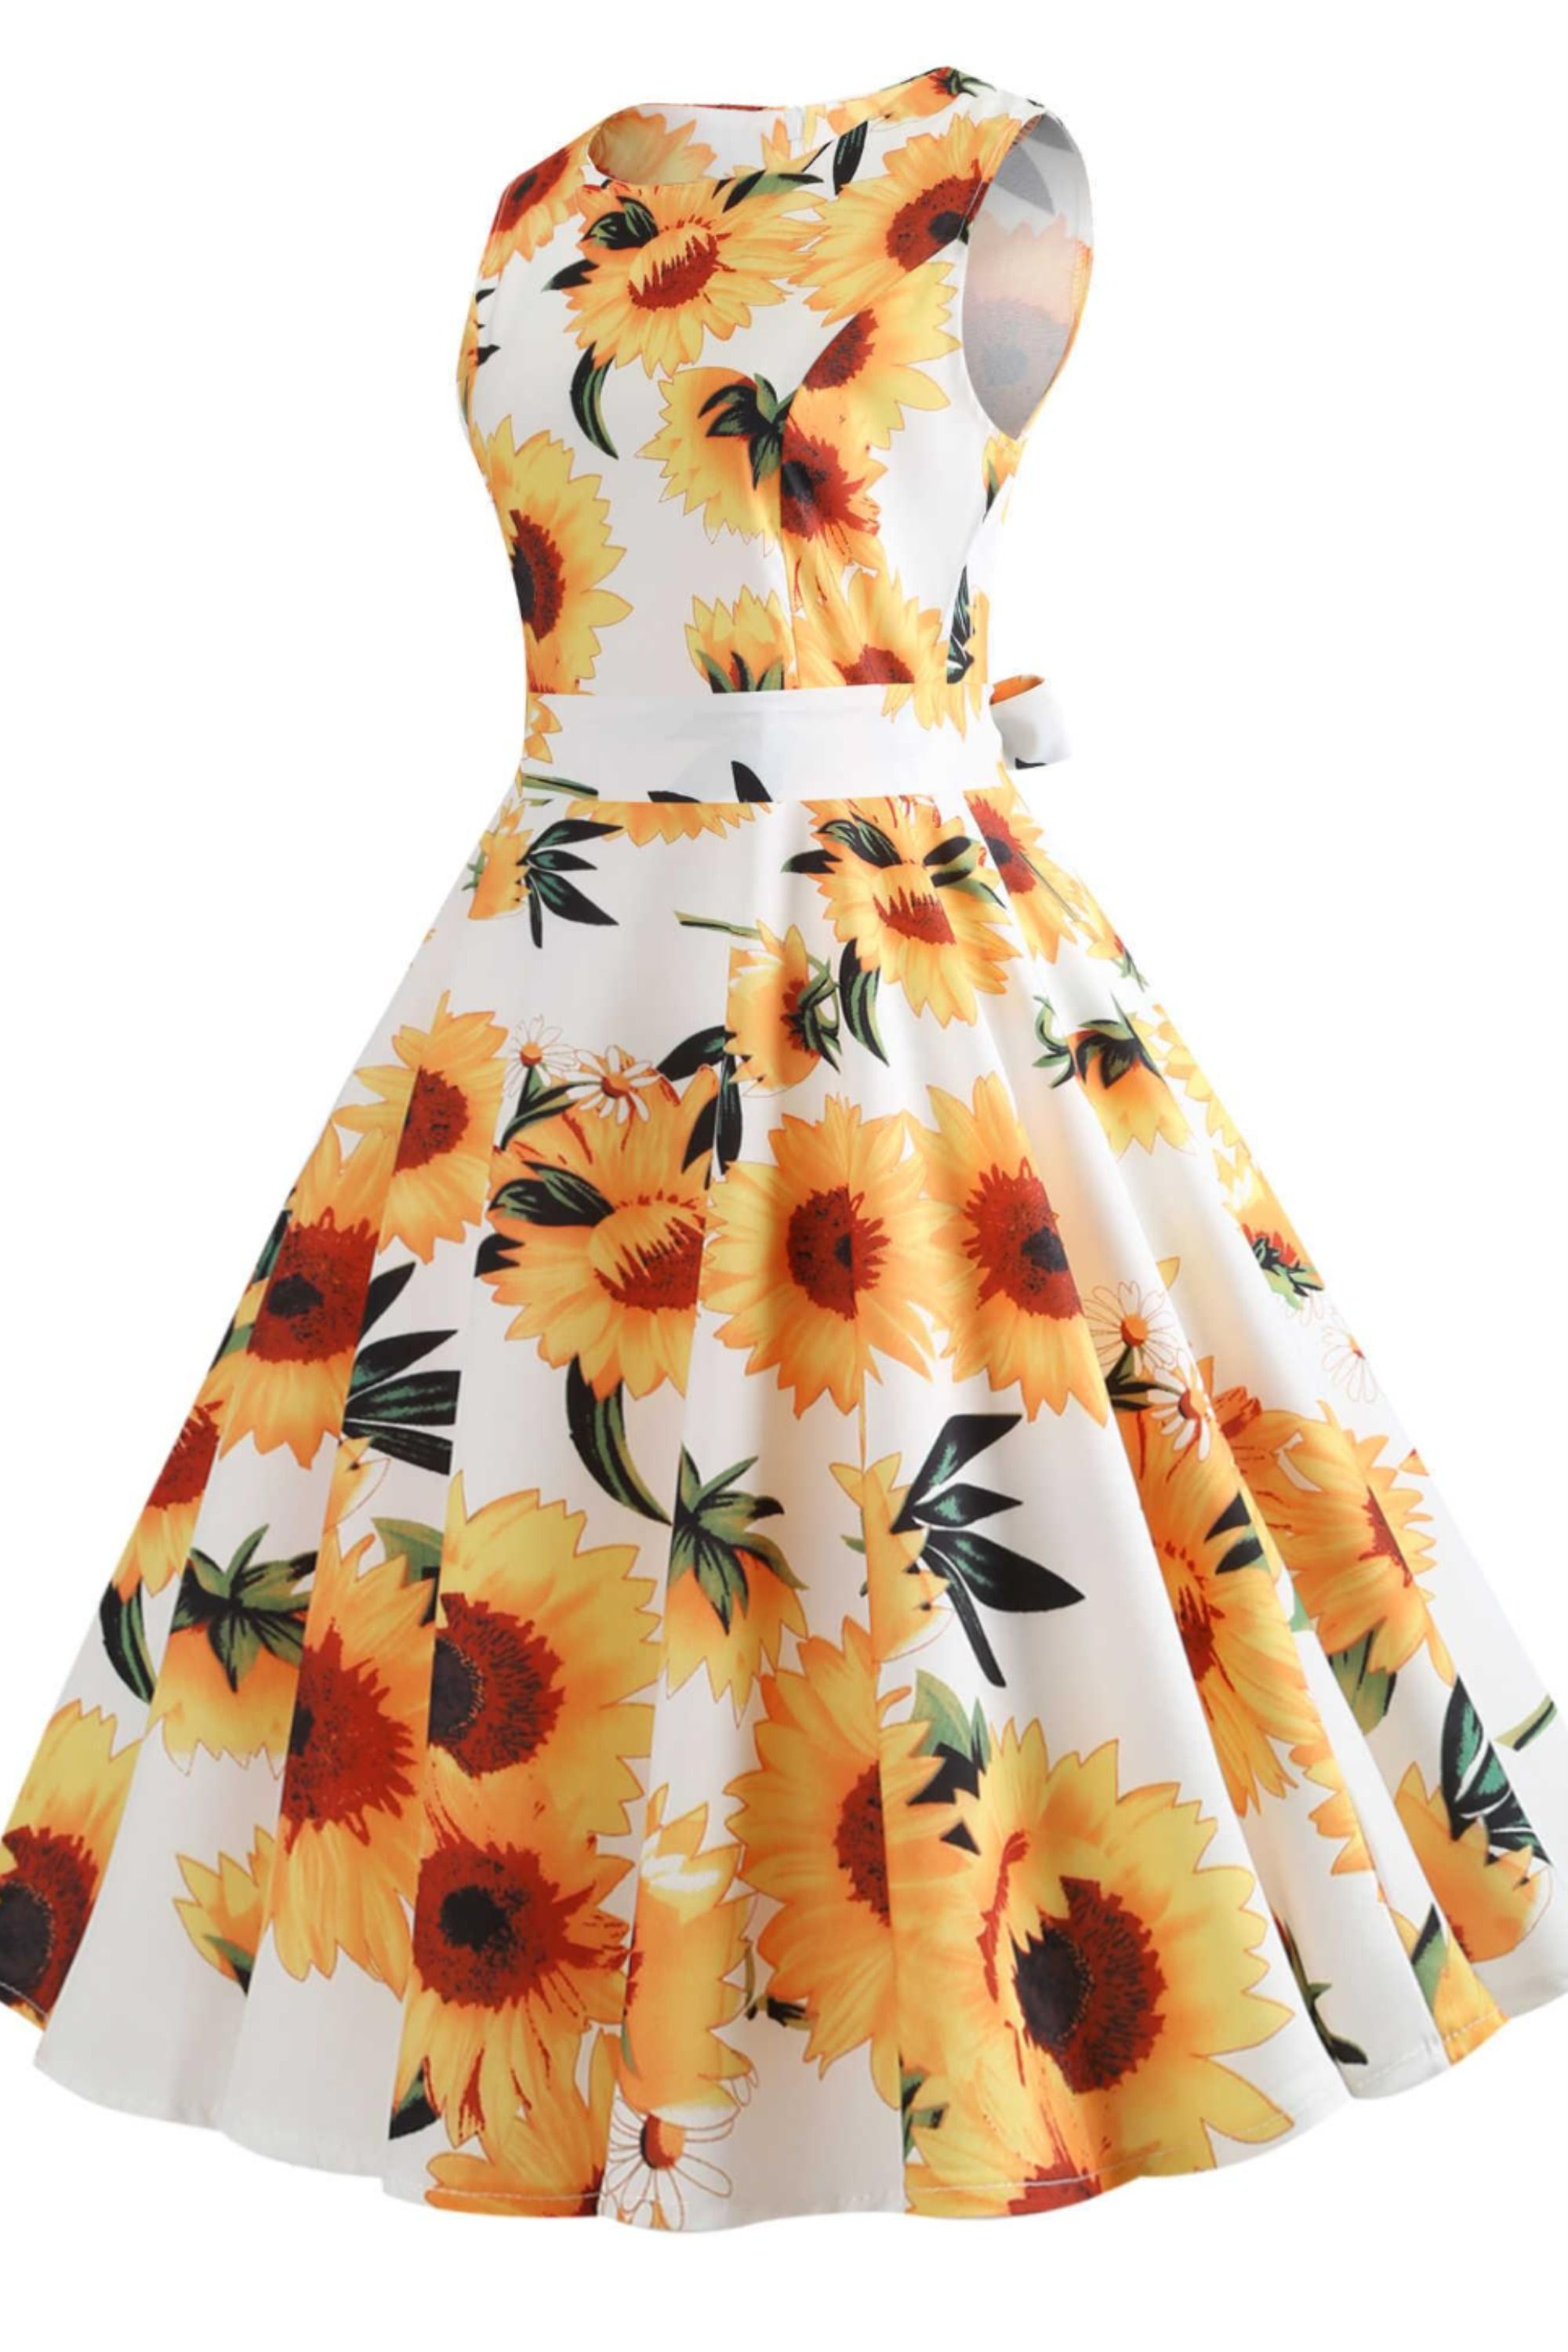 1950s Floral Yellow And White Dress Dresses Sunflower Dress White Dresses For Women [ 3000 x 2000 Pixel ]